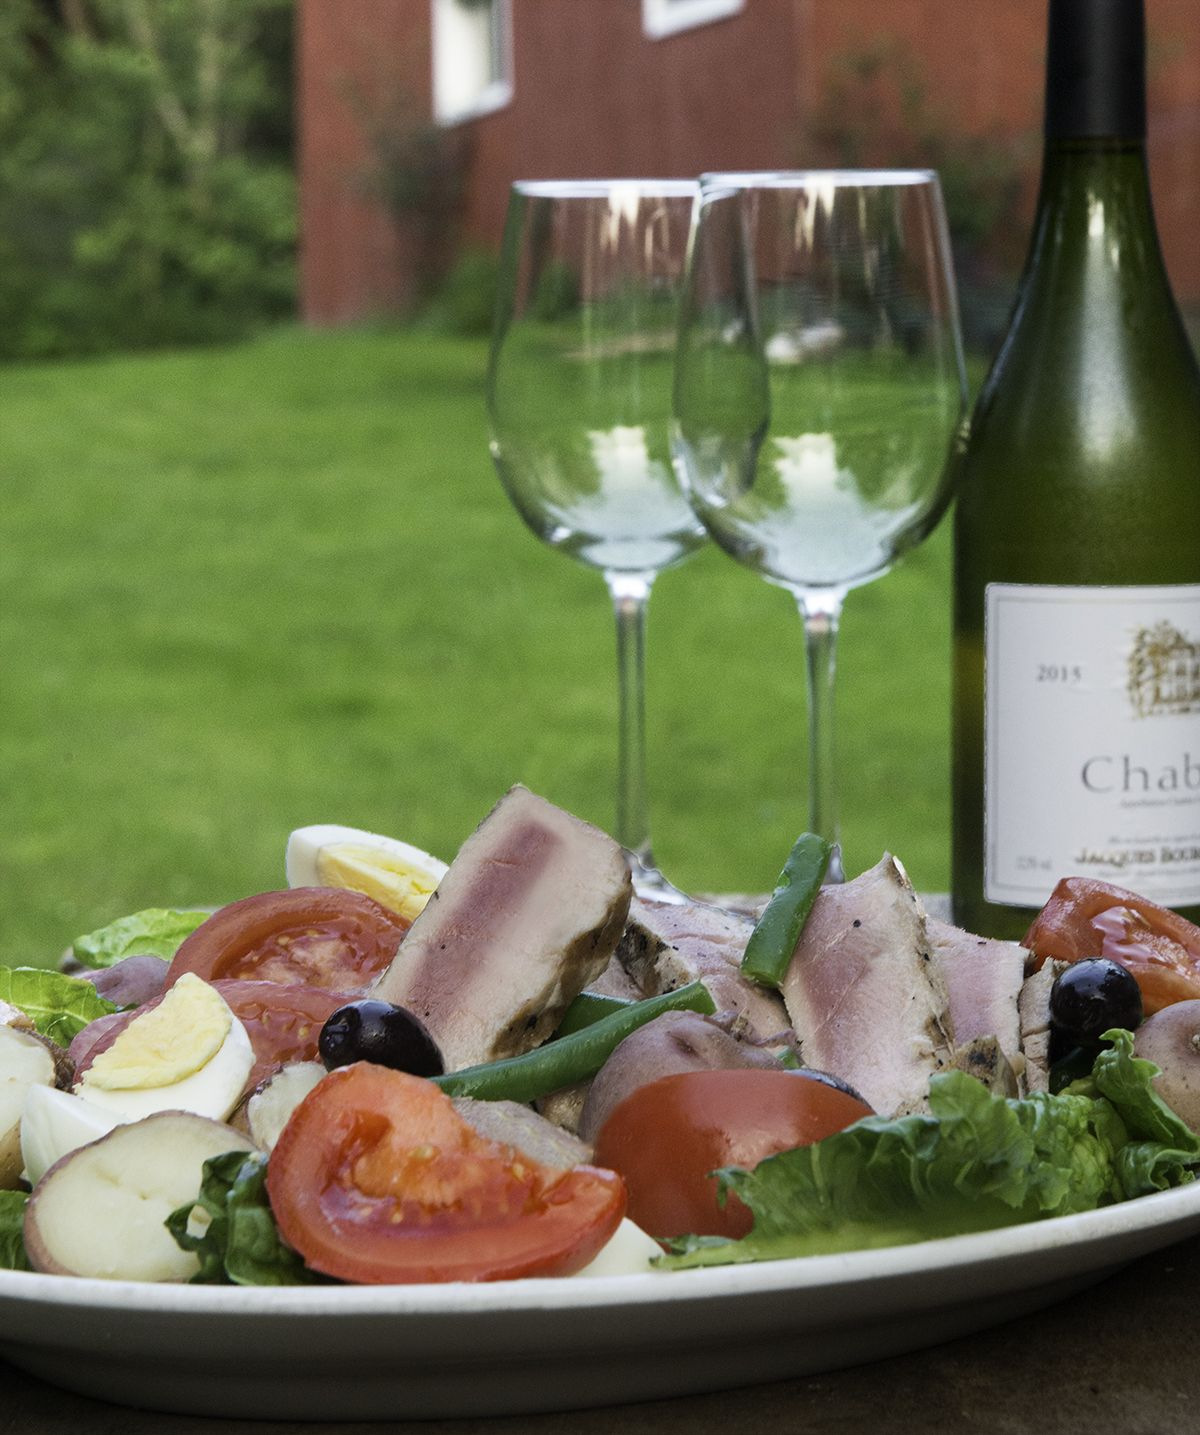 Salade Nicoise: A classic dish for a summer evening